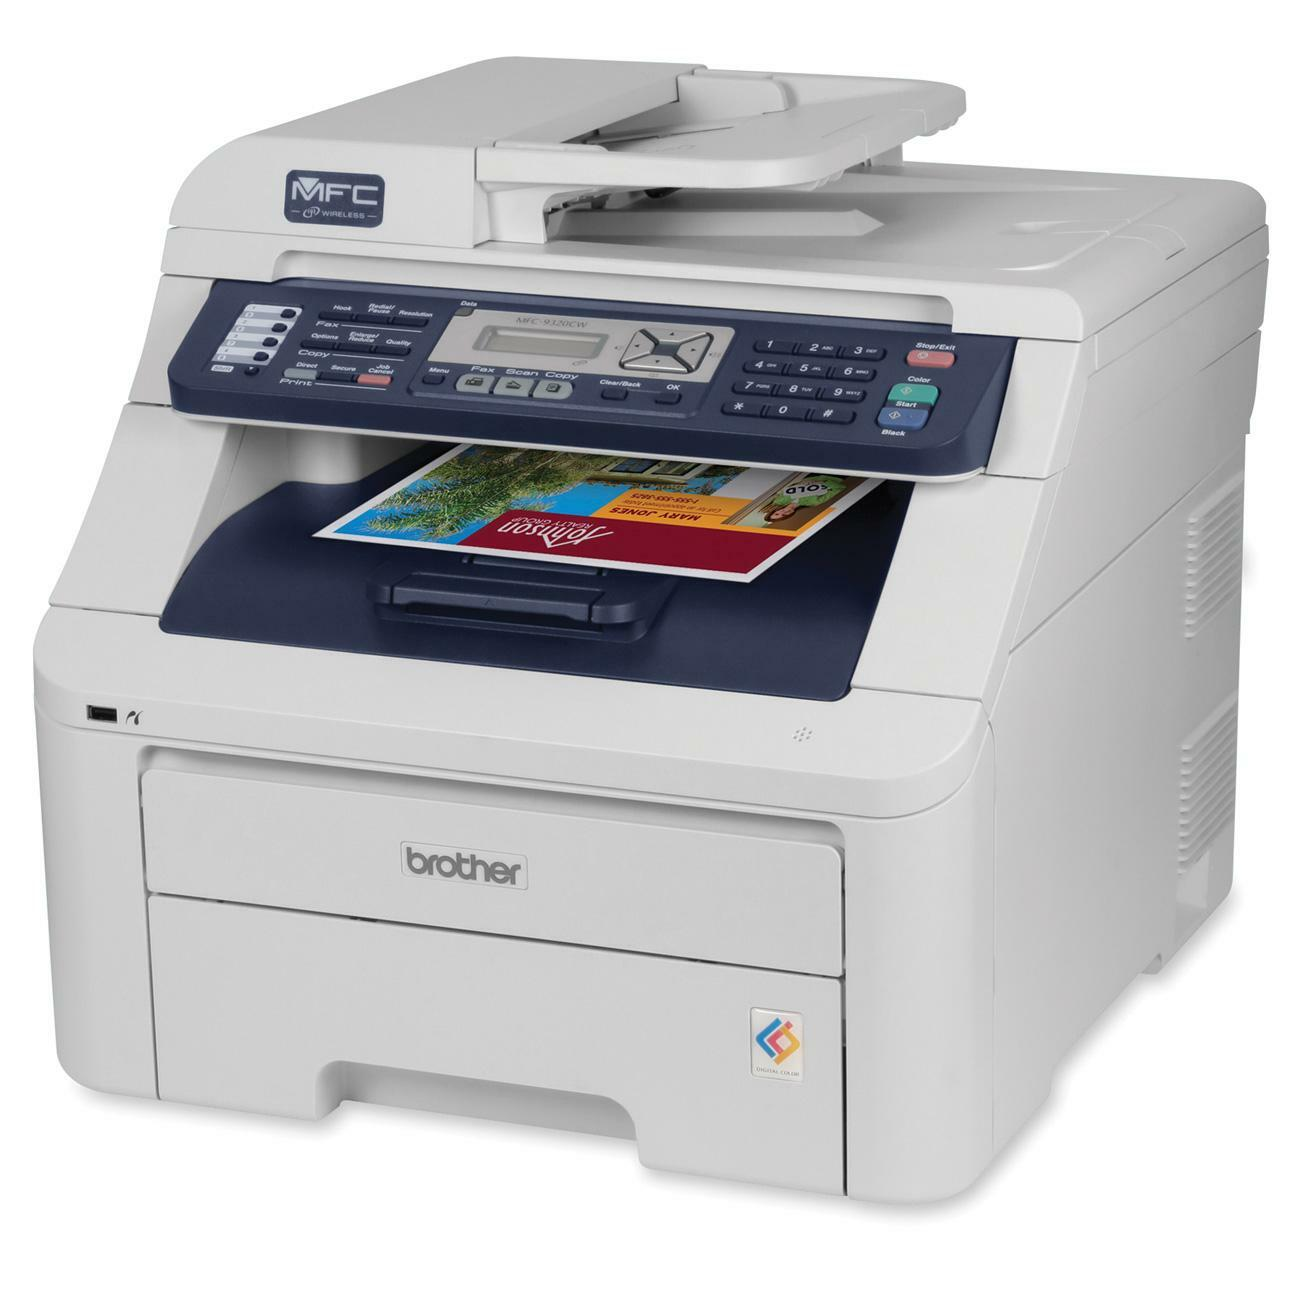 brother mfc 9320cw led multifunction printer color plain paper